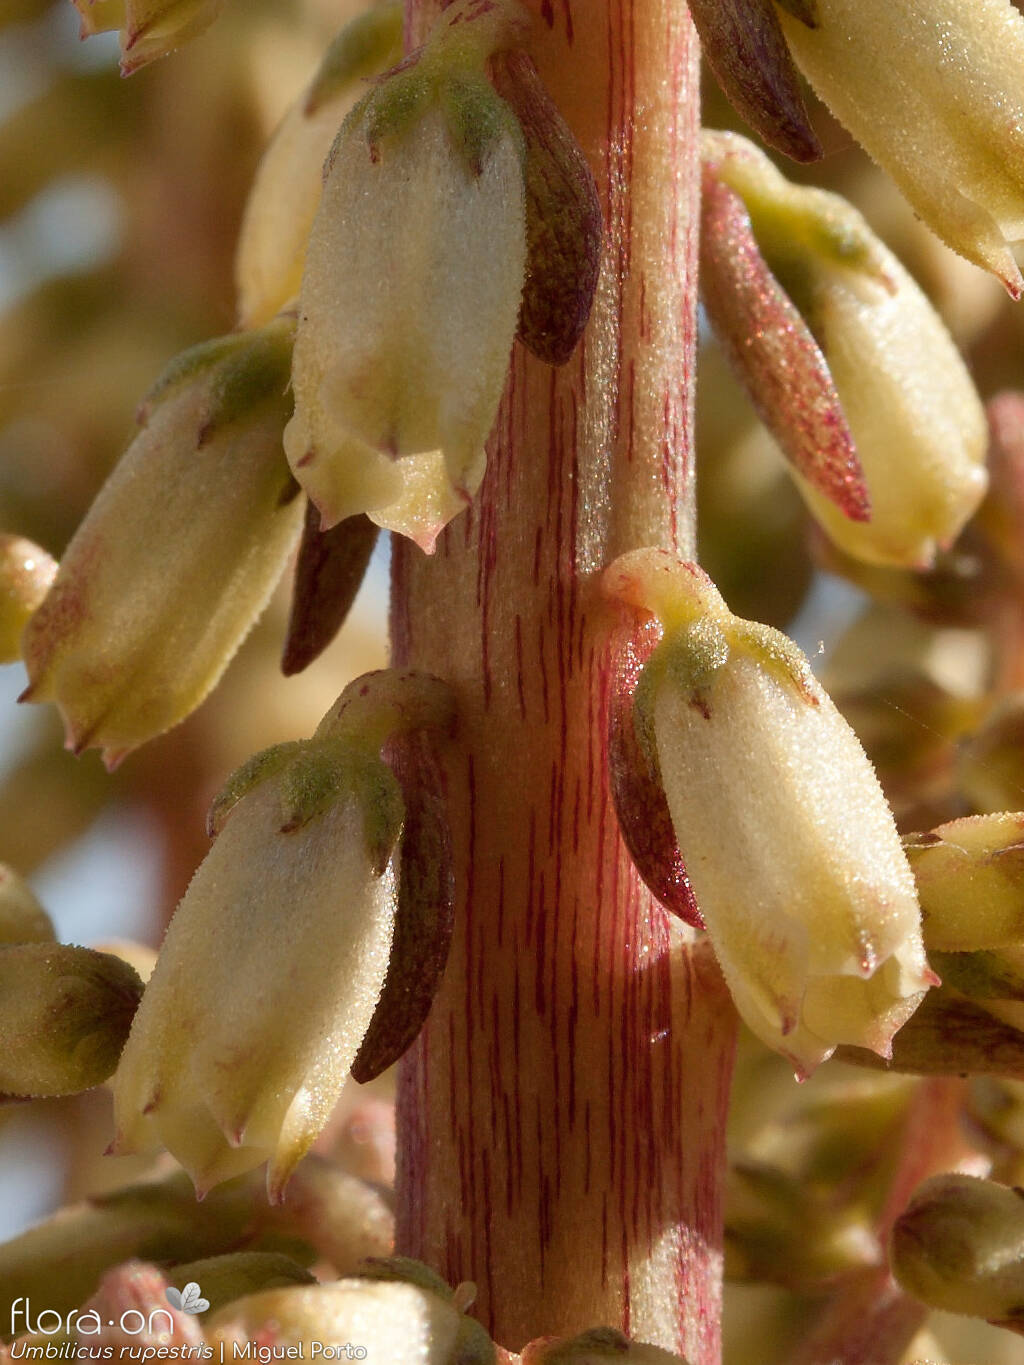 Umbilicus rupestris - Flor (close-up) | Miguel Porto; CC BY-NC 4.0